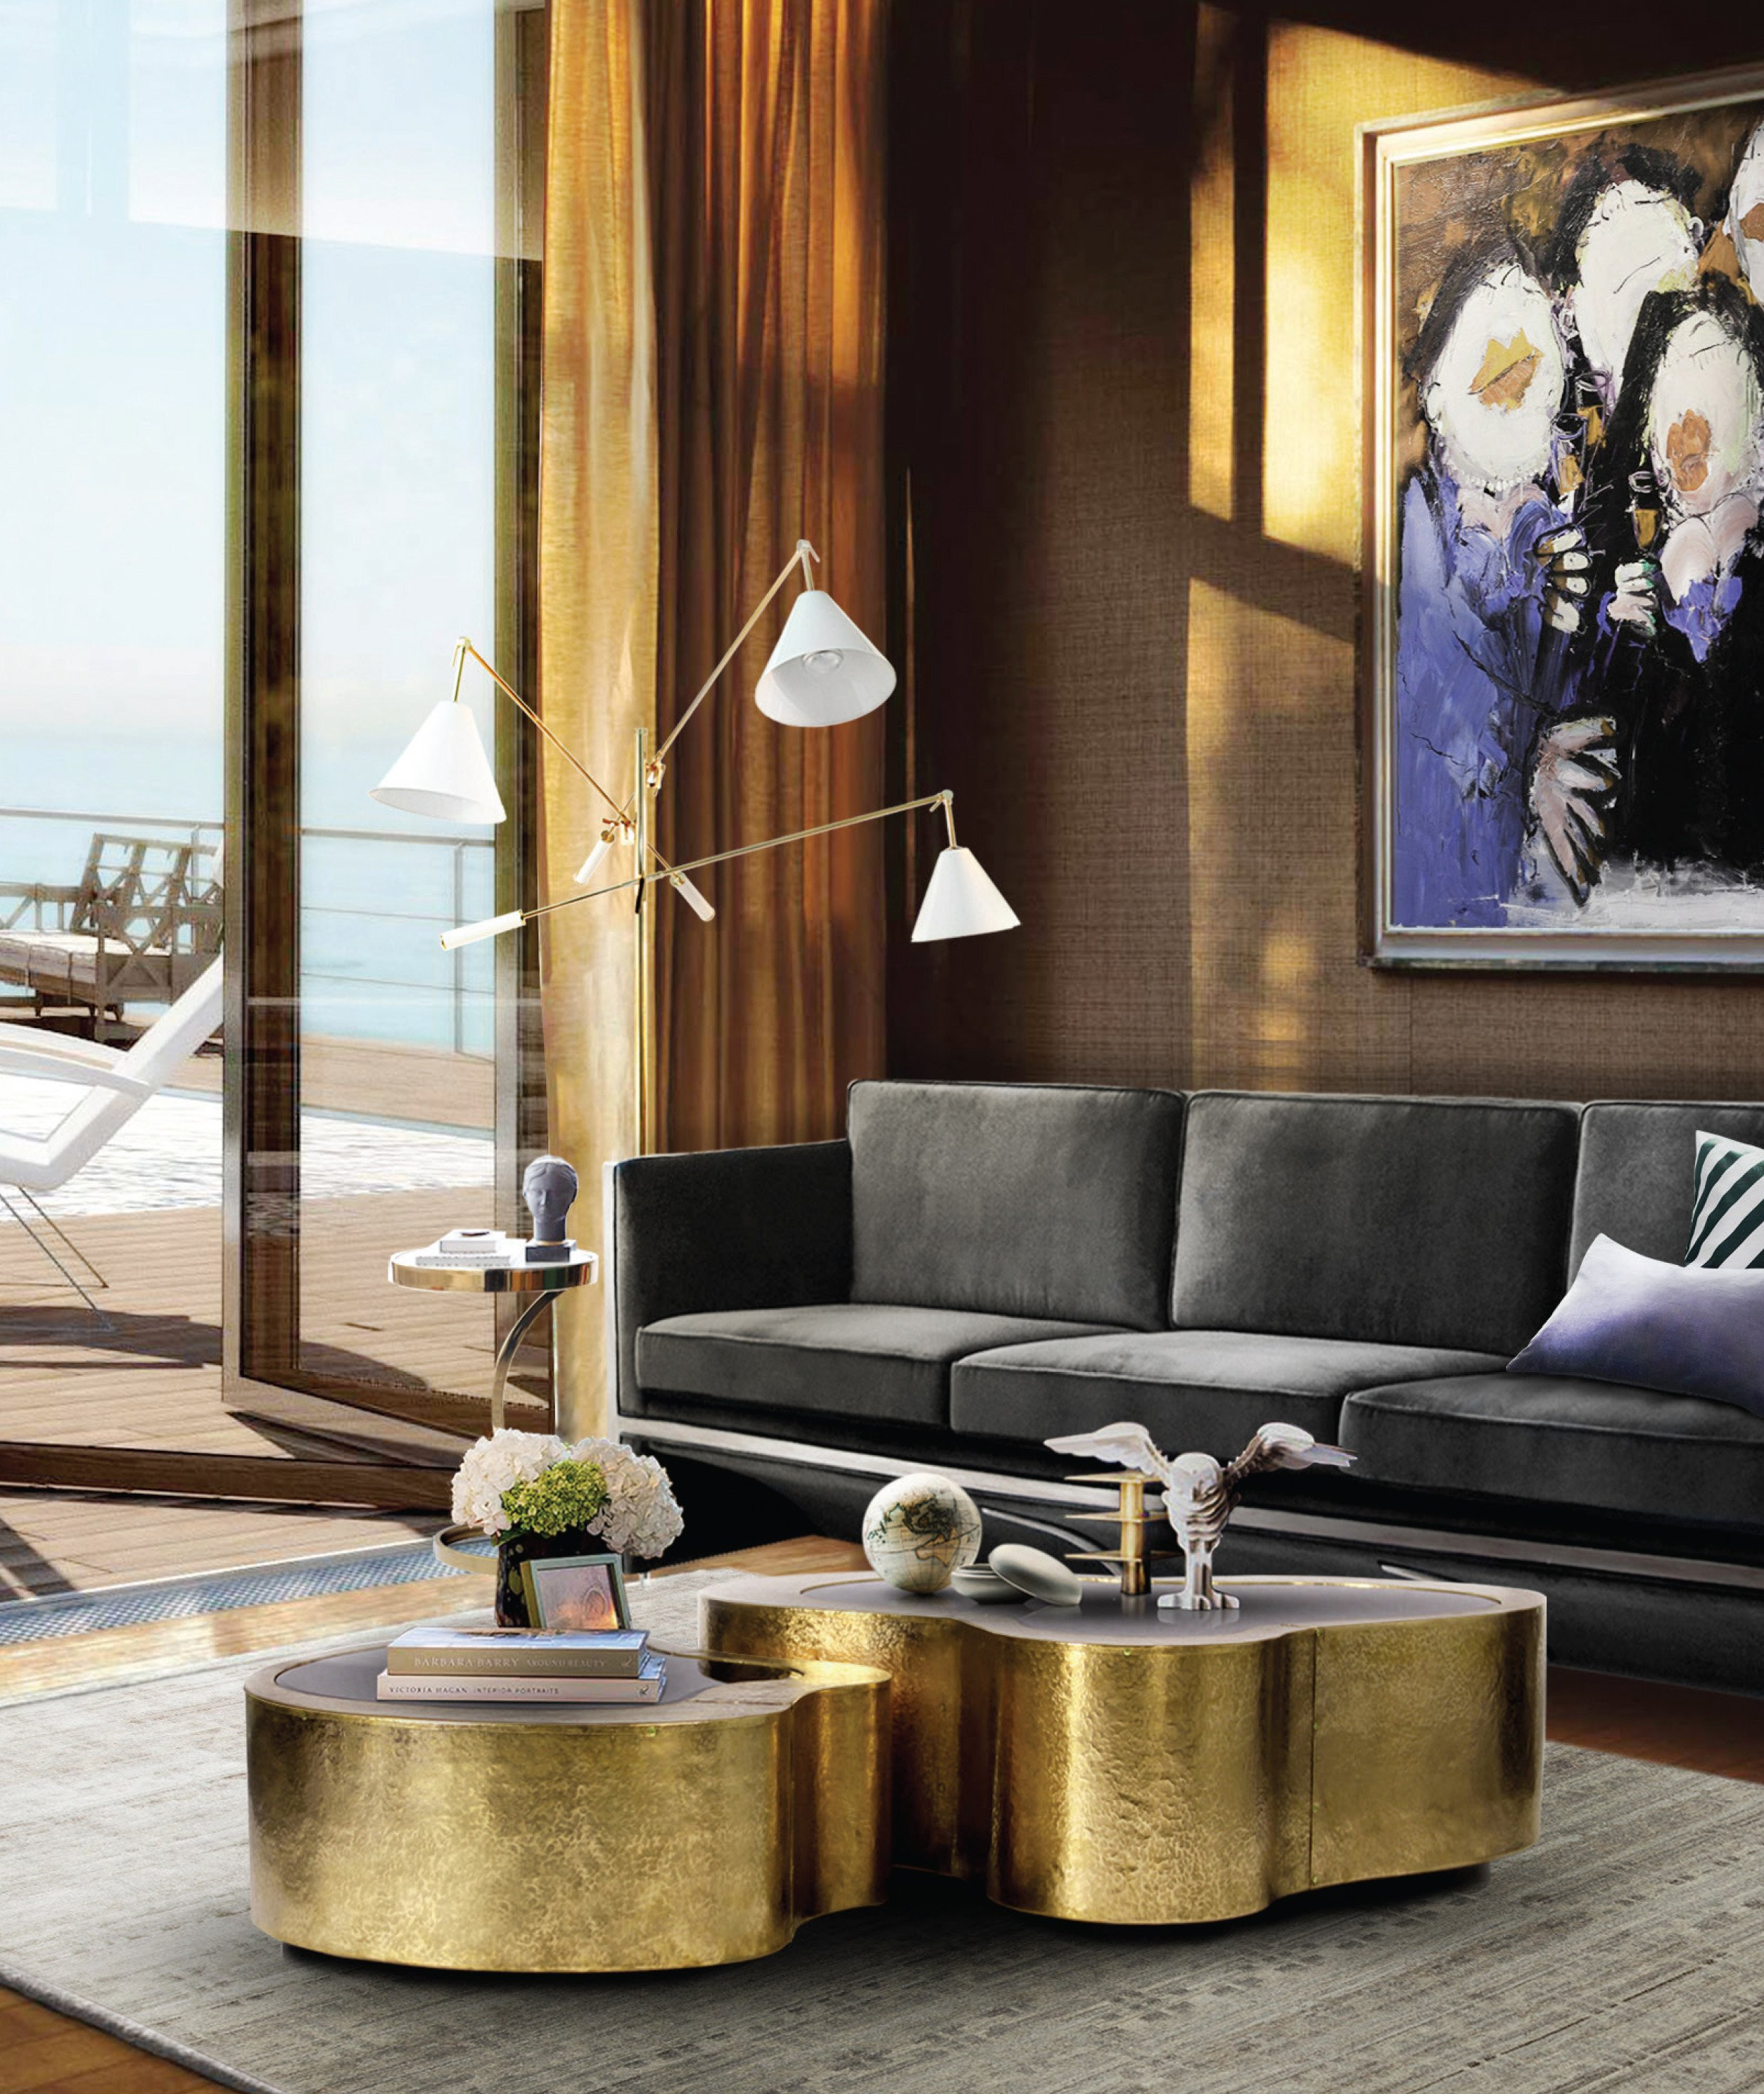 Classic Contemporary Living Room Best Of Design Inspiration for the Luxurious Modern Classic Living Room